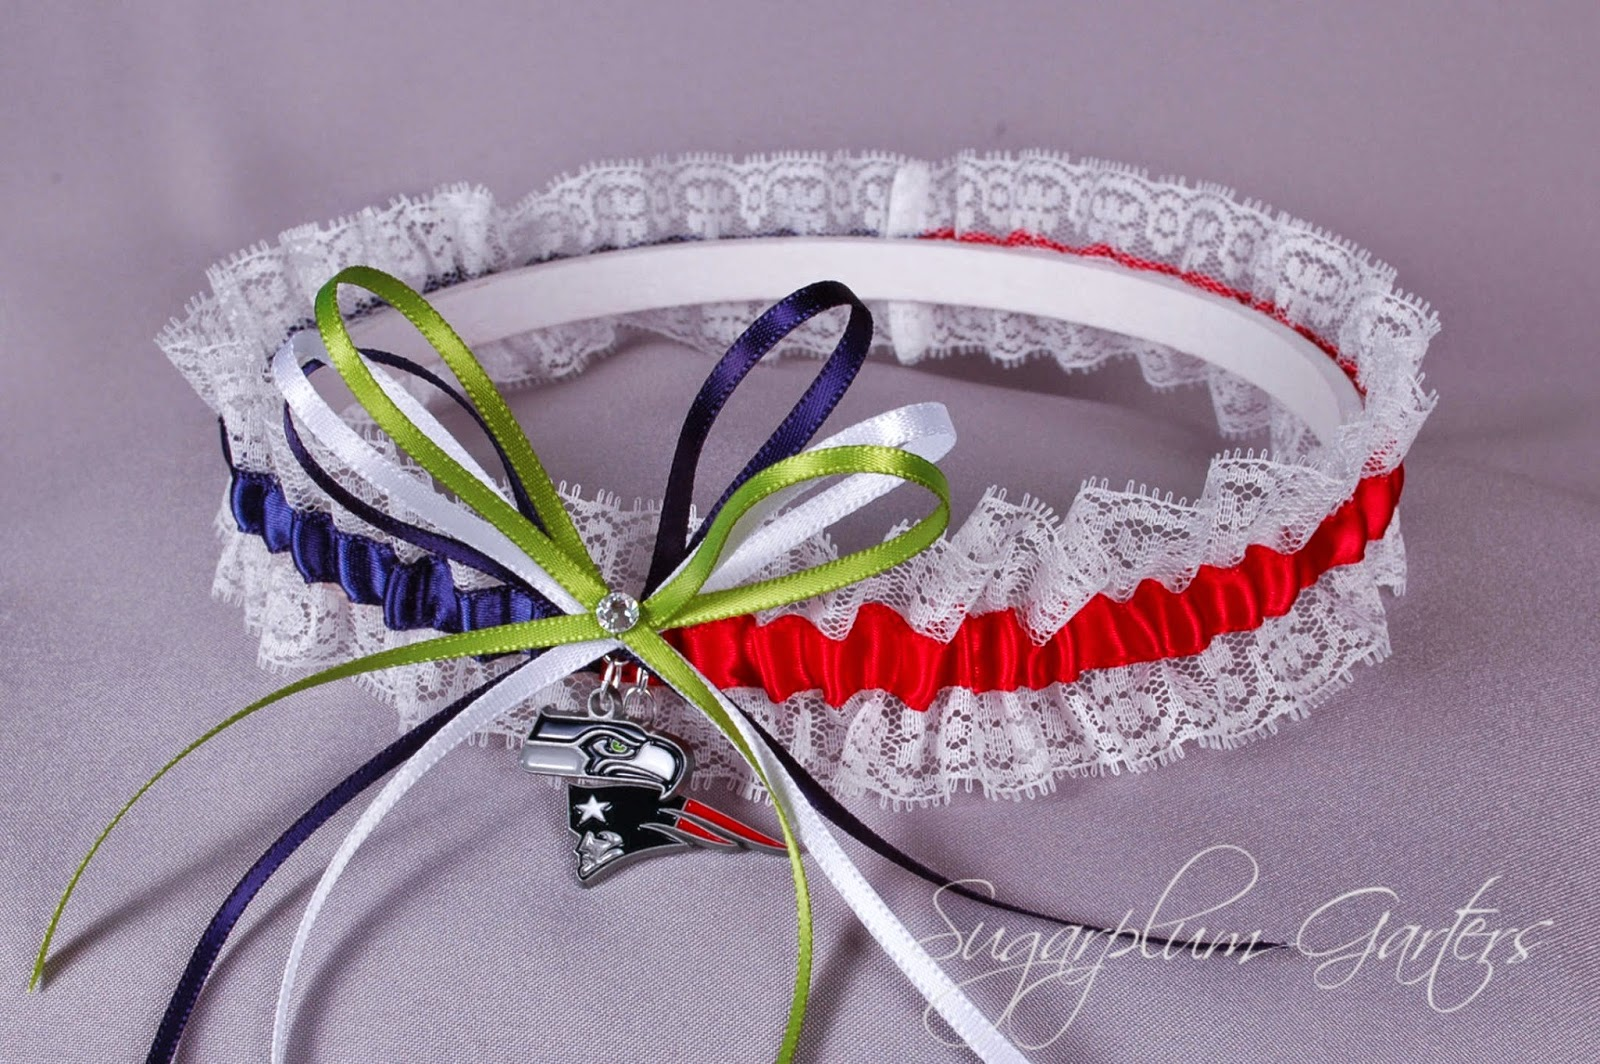 Superbowl XLIX Seattle Seahawks vs New England Patriots Rival Lace Garter by Sugarplum Garters